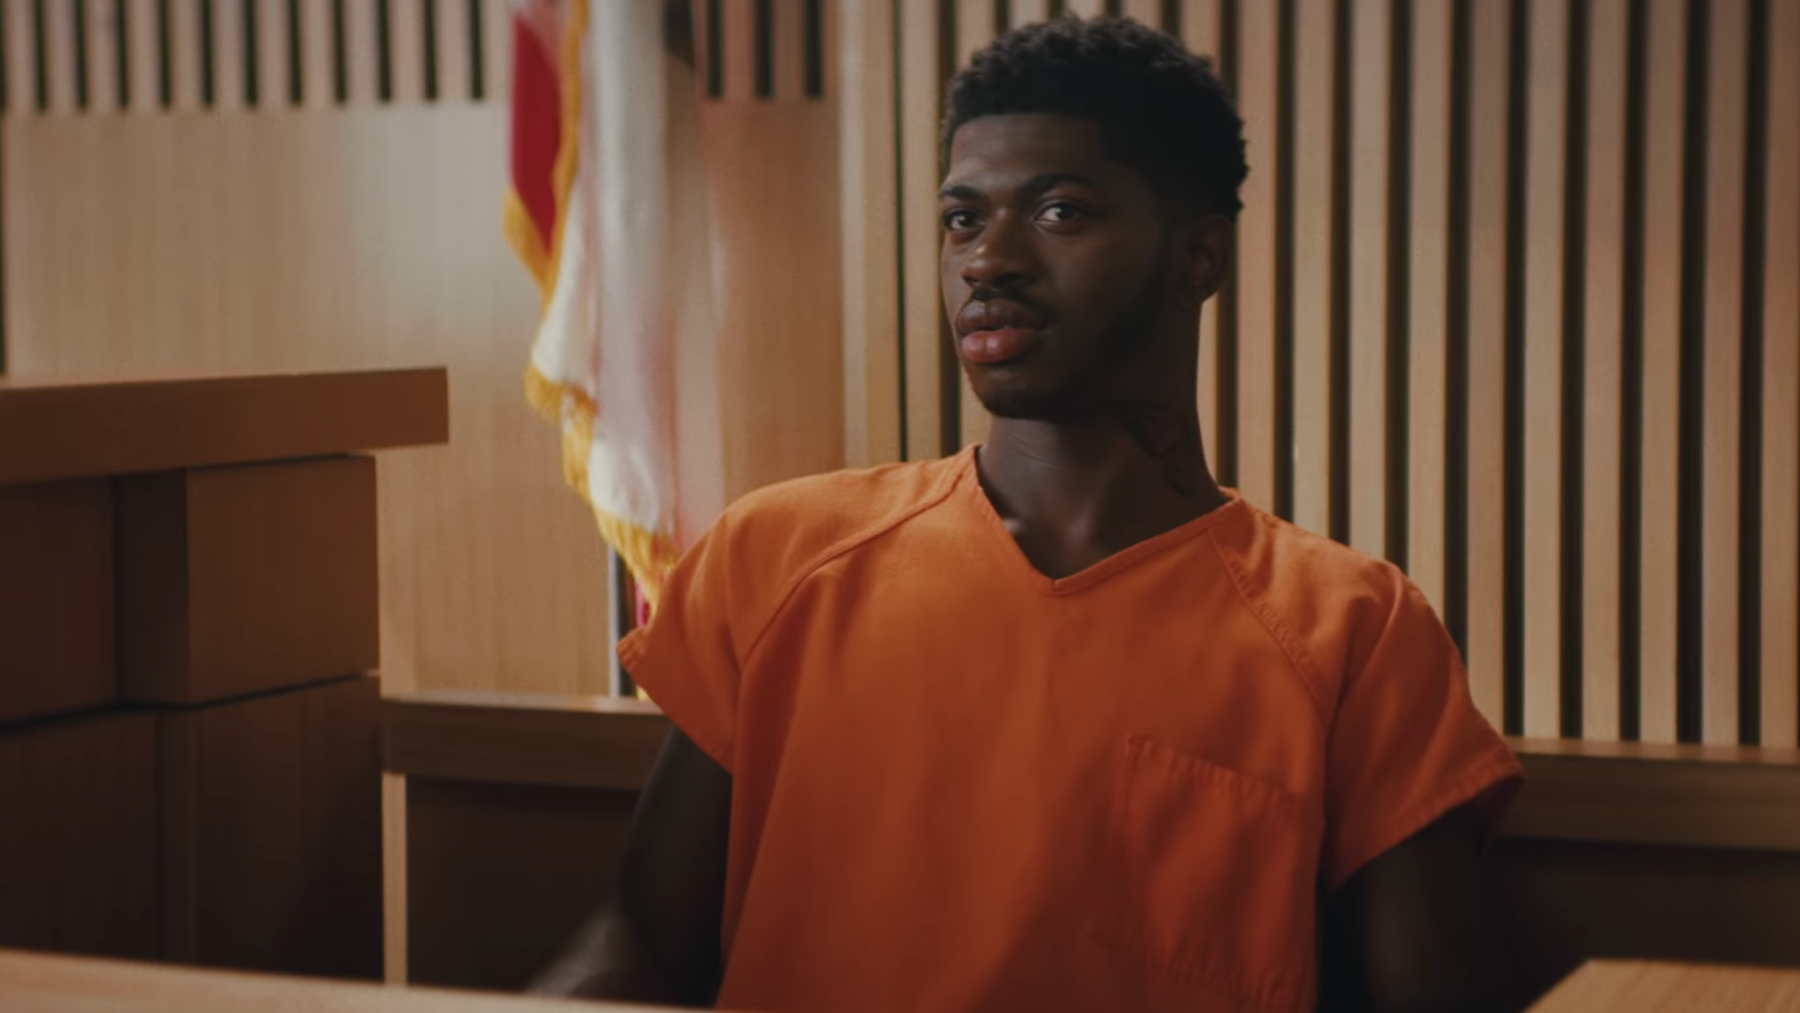 Lil Nas X Puts Himself on Trial for Satan Shoes in Teaser for New Song 'Industry Baby'